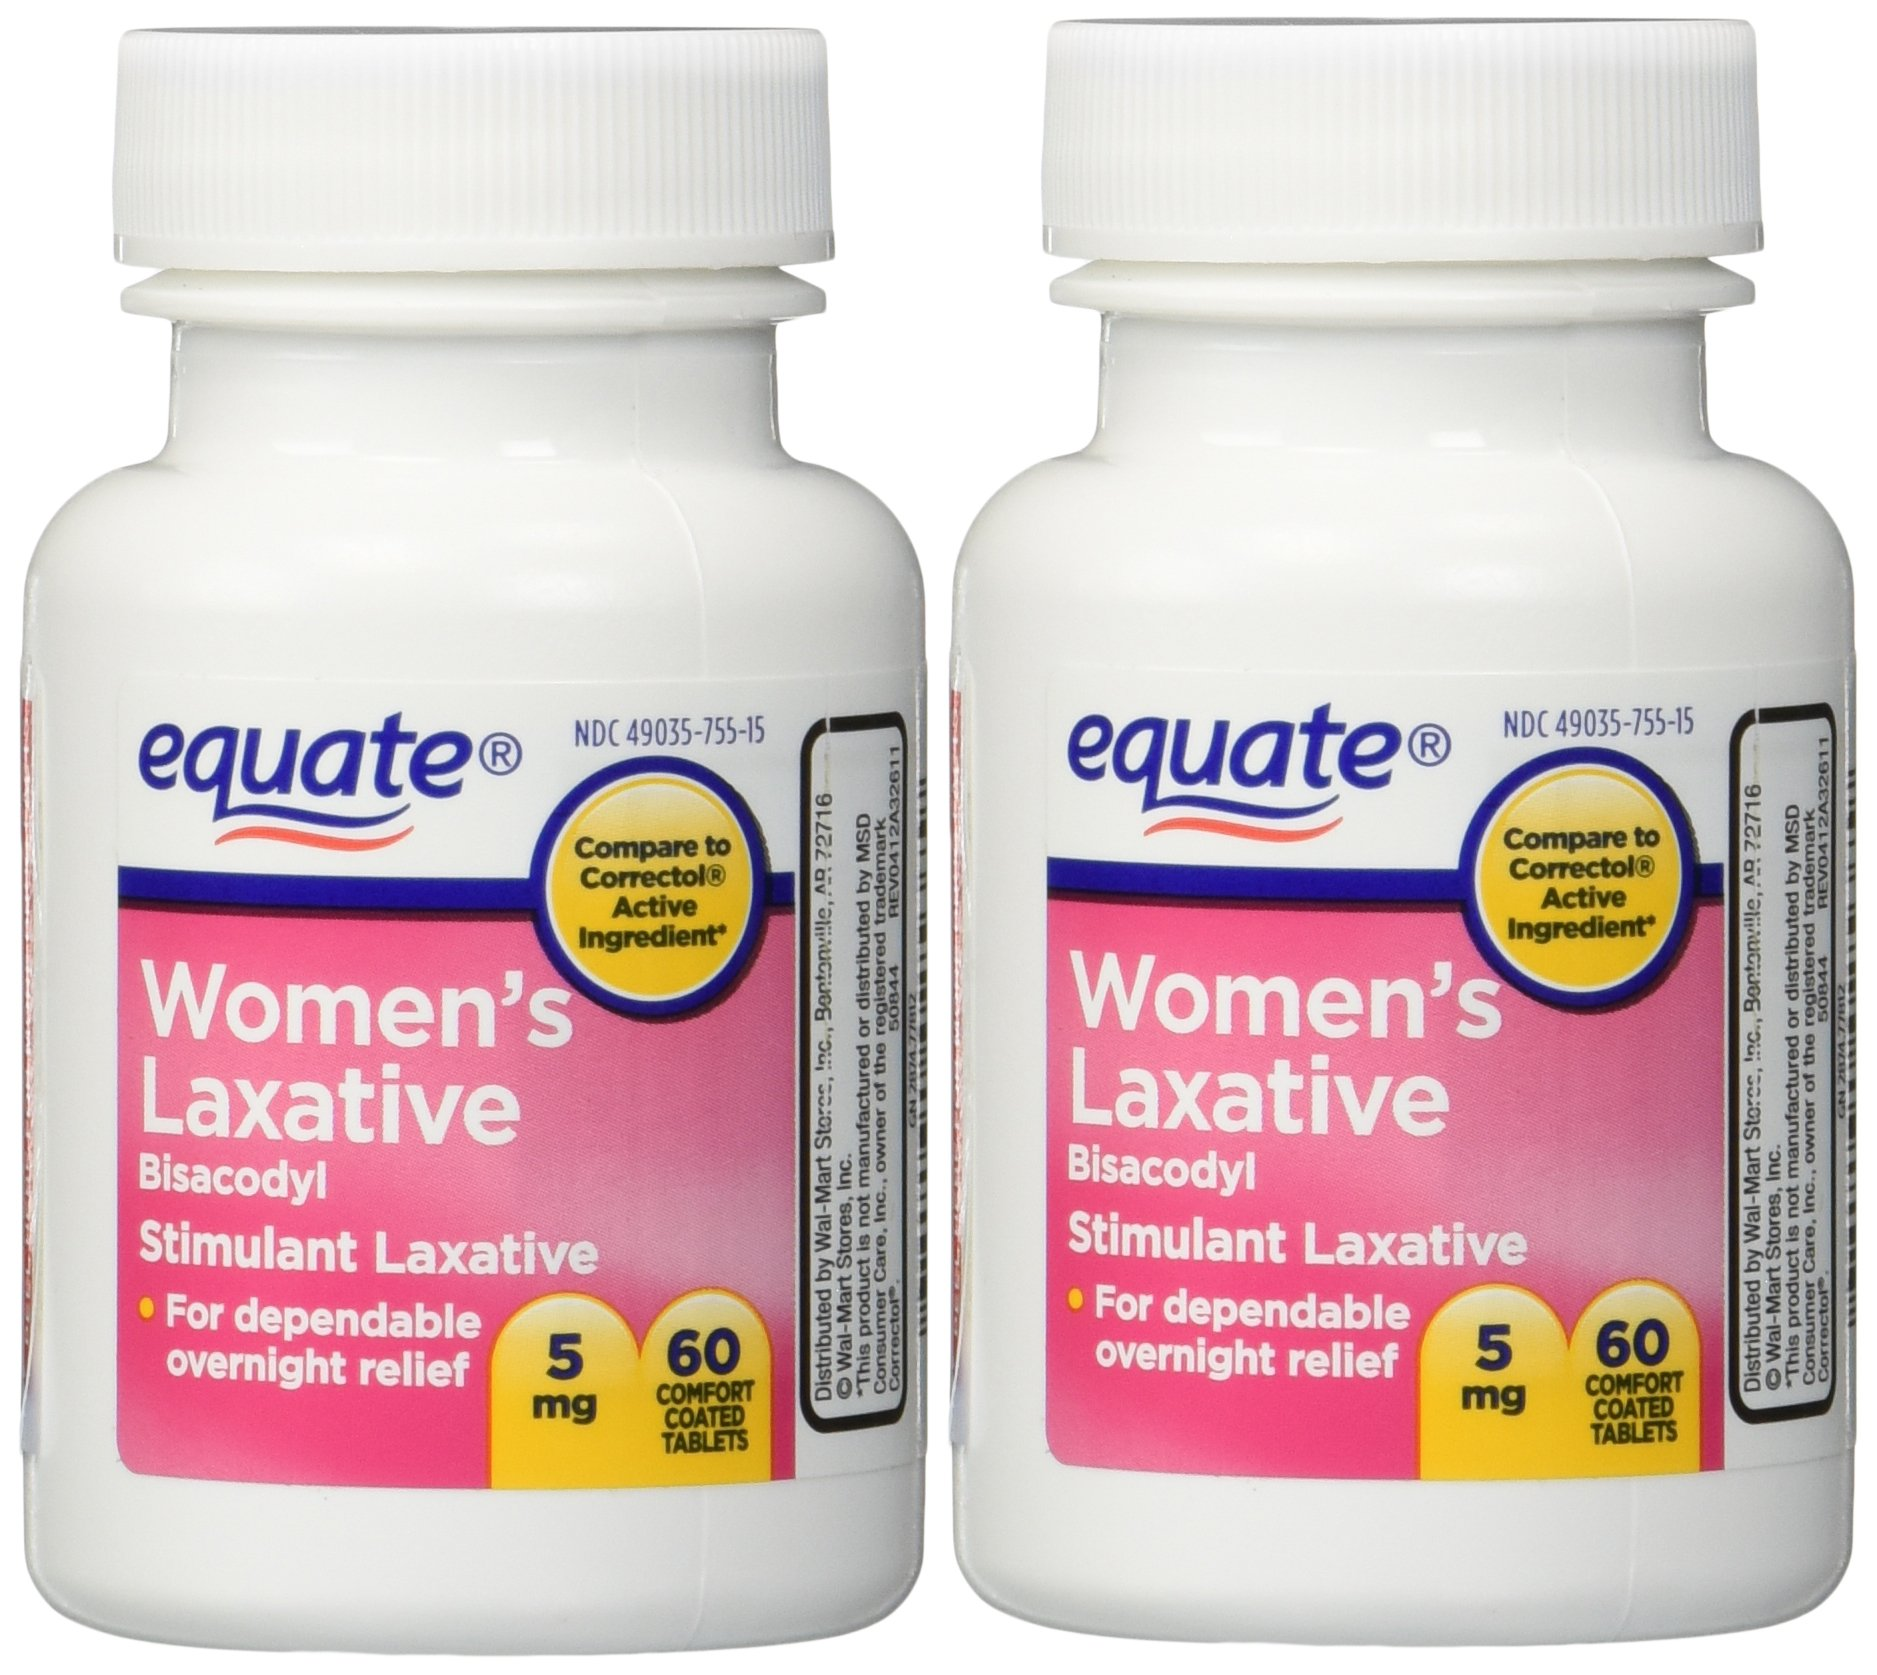 Women's Laxative Tablets, Bisacodyl 5mg 120ct (Two 60ct bottles) by Equate Compare to Correctol by Equate